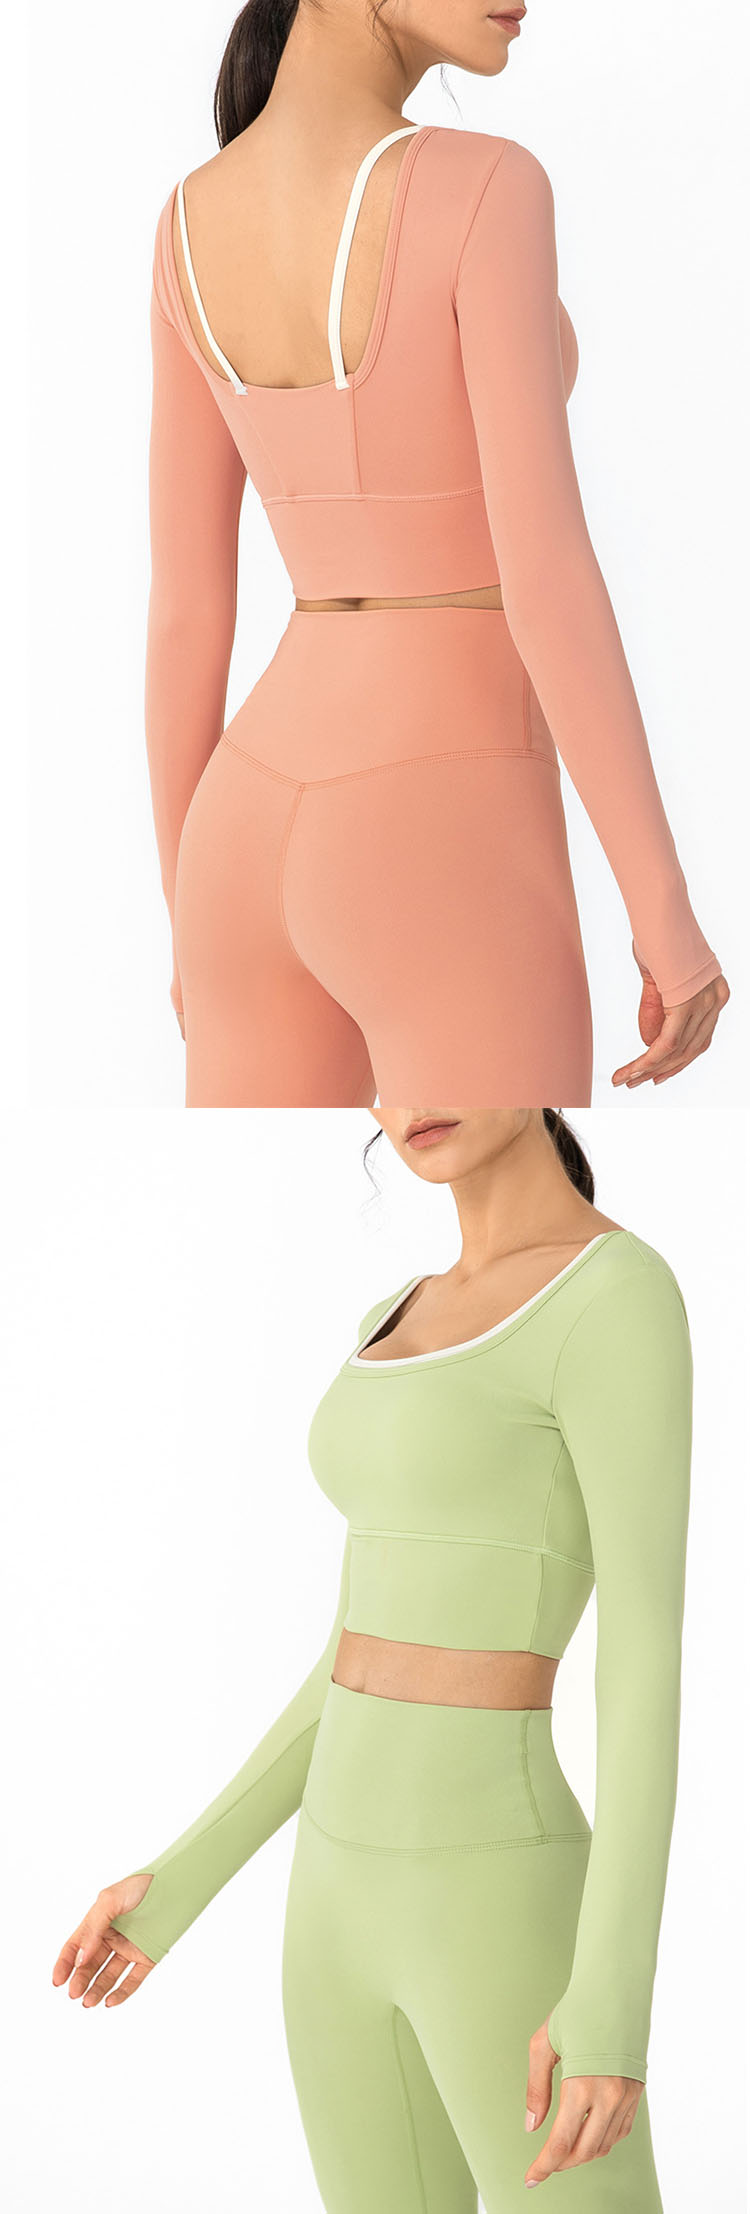 open back design, showing the body curve, casual wear for daily shopping.